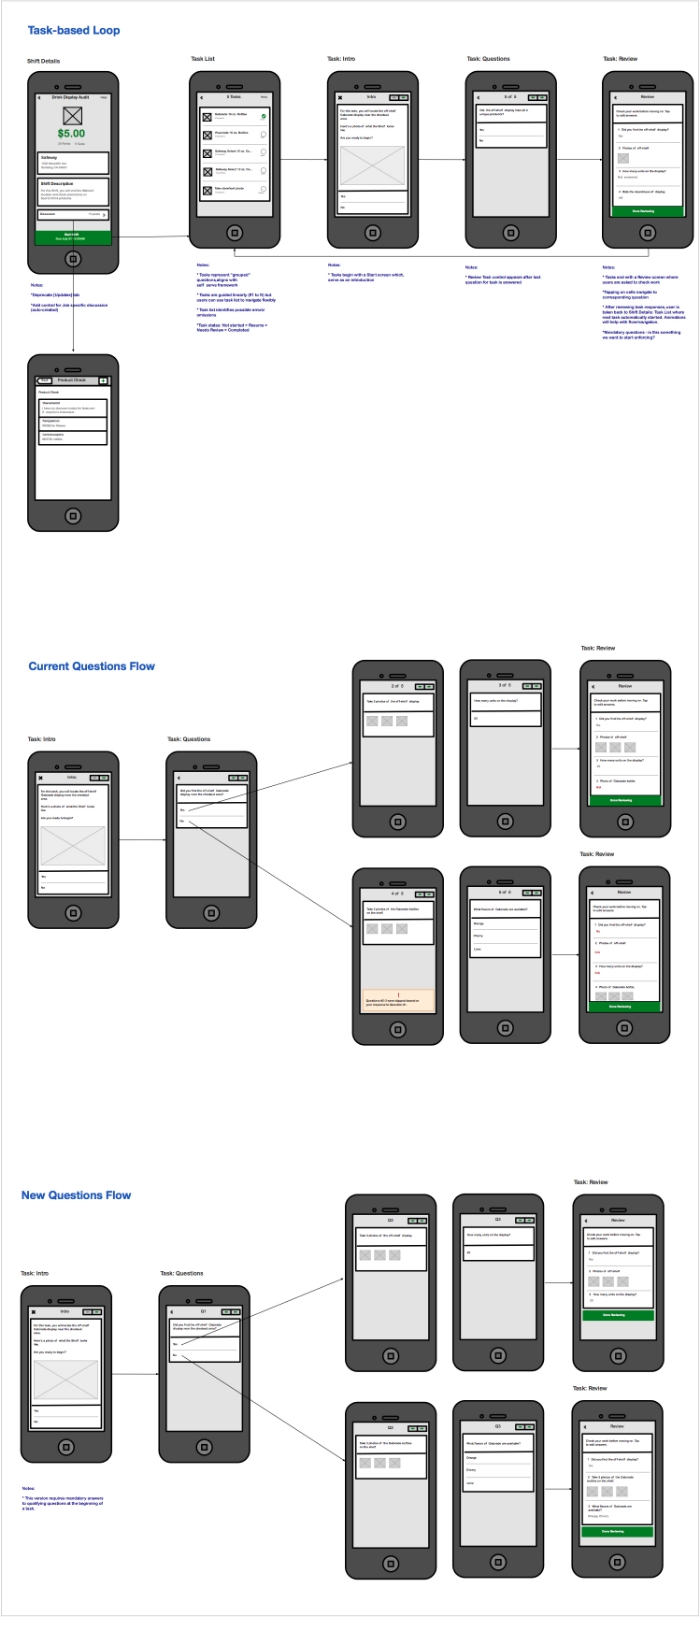 Fig 3. Wireframes of original format and the new task-based format.